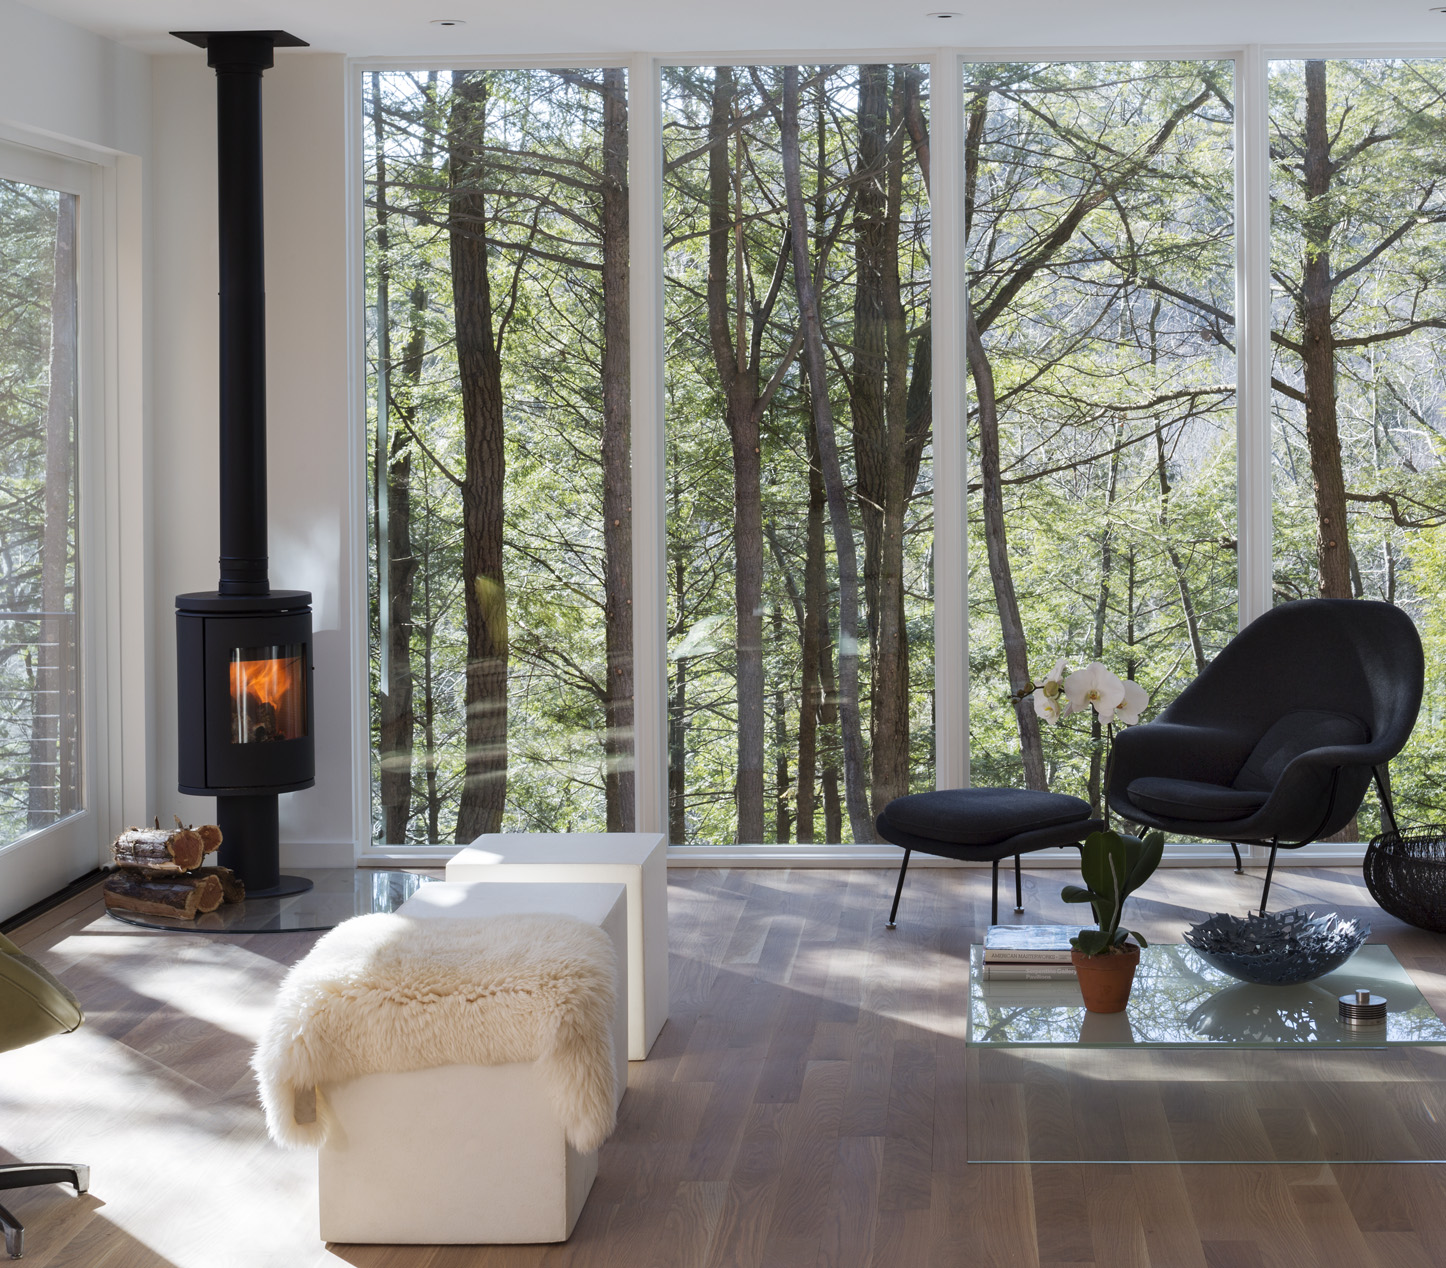 Modern Home Hudson Valley - Creek House by Studio MM Architect